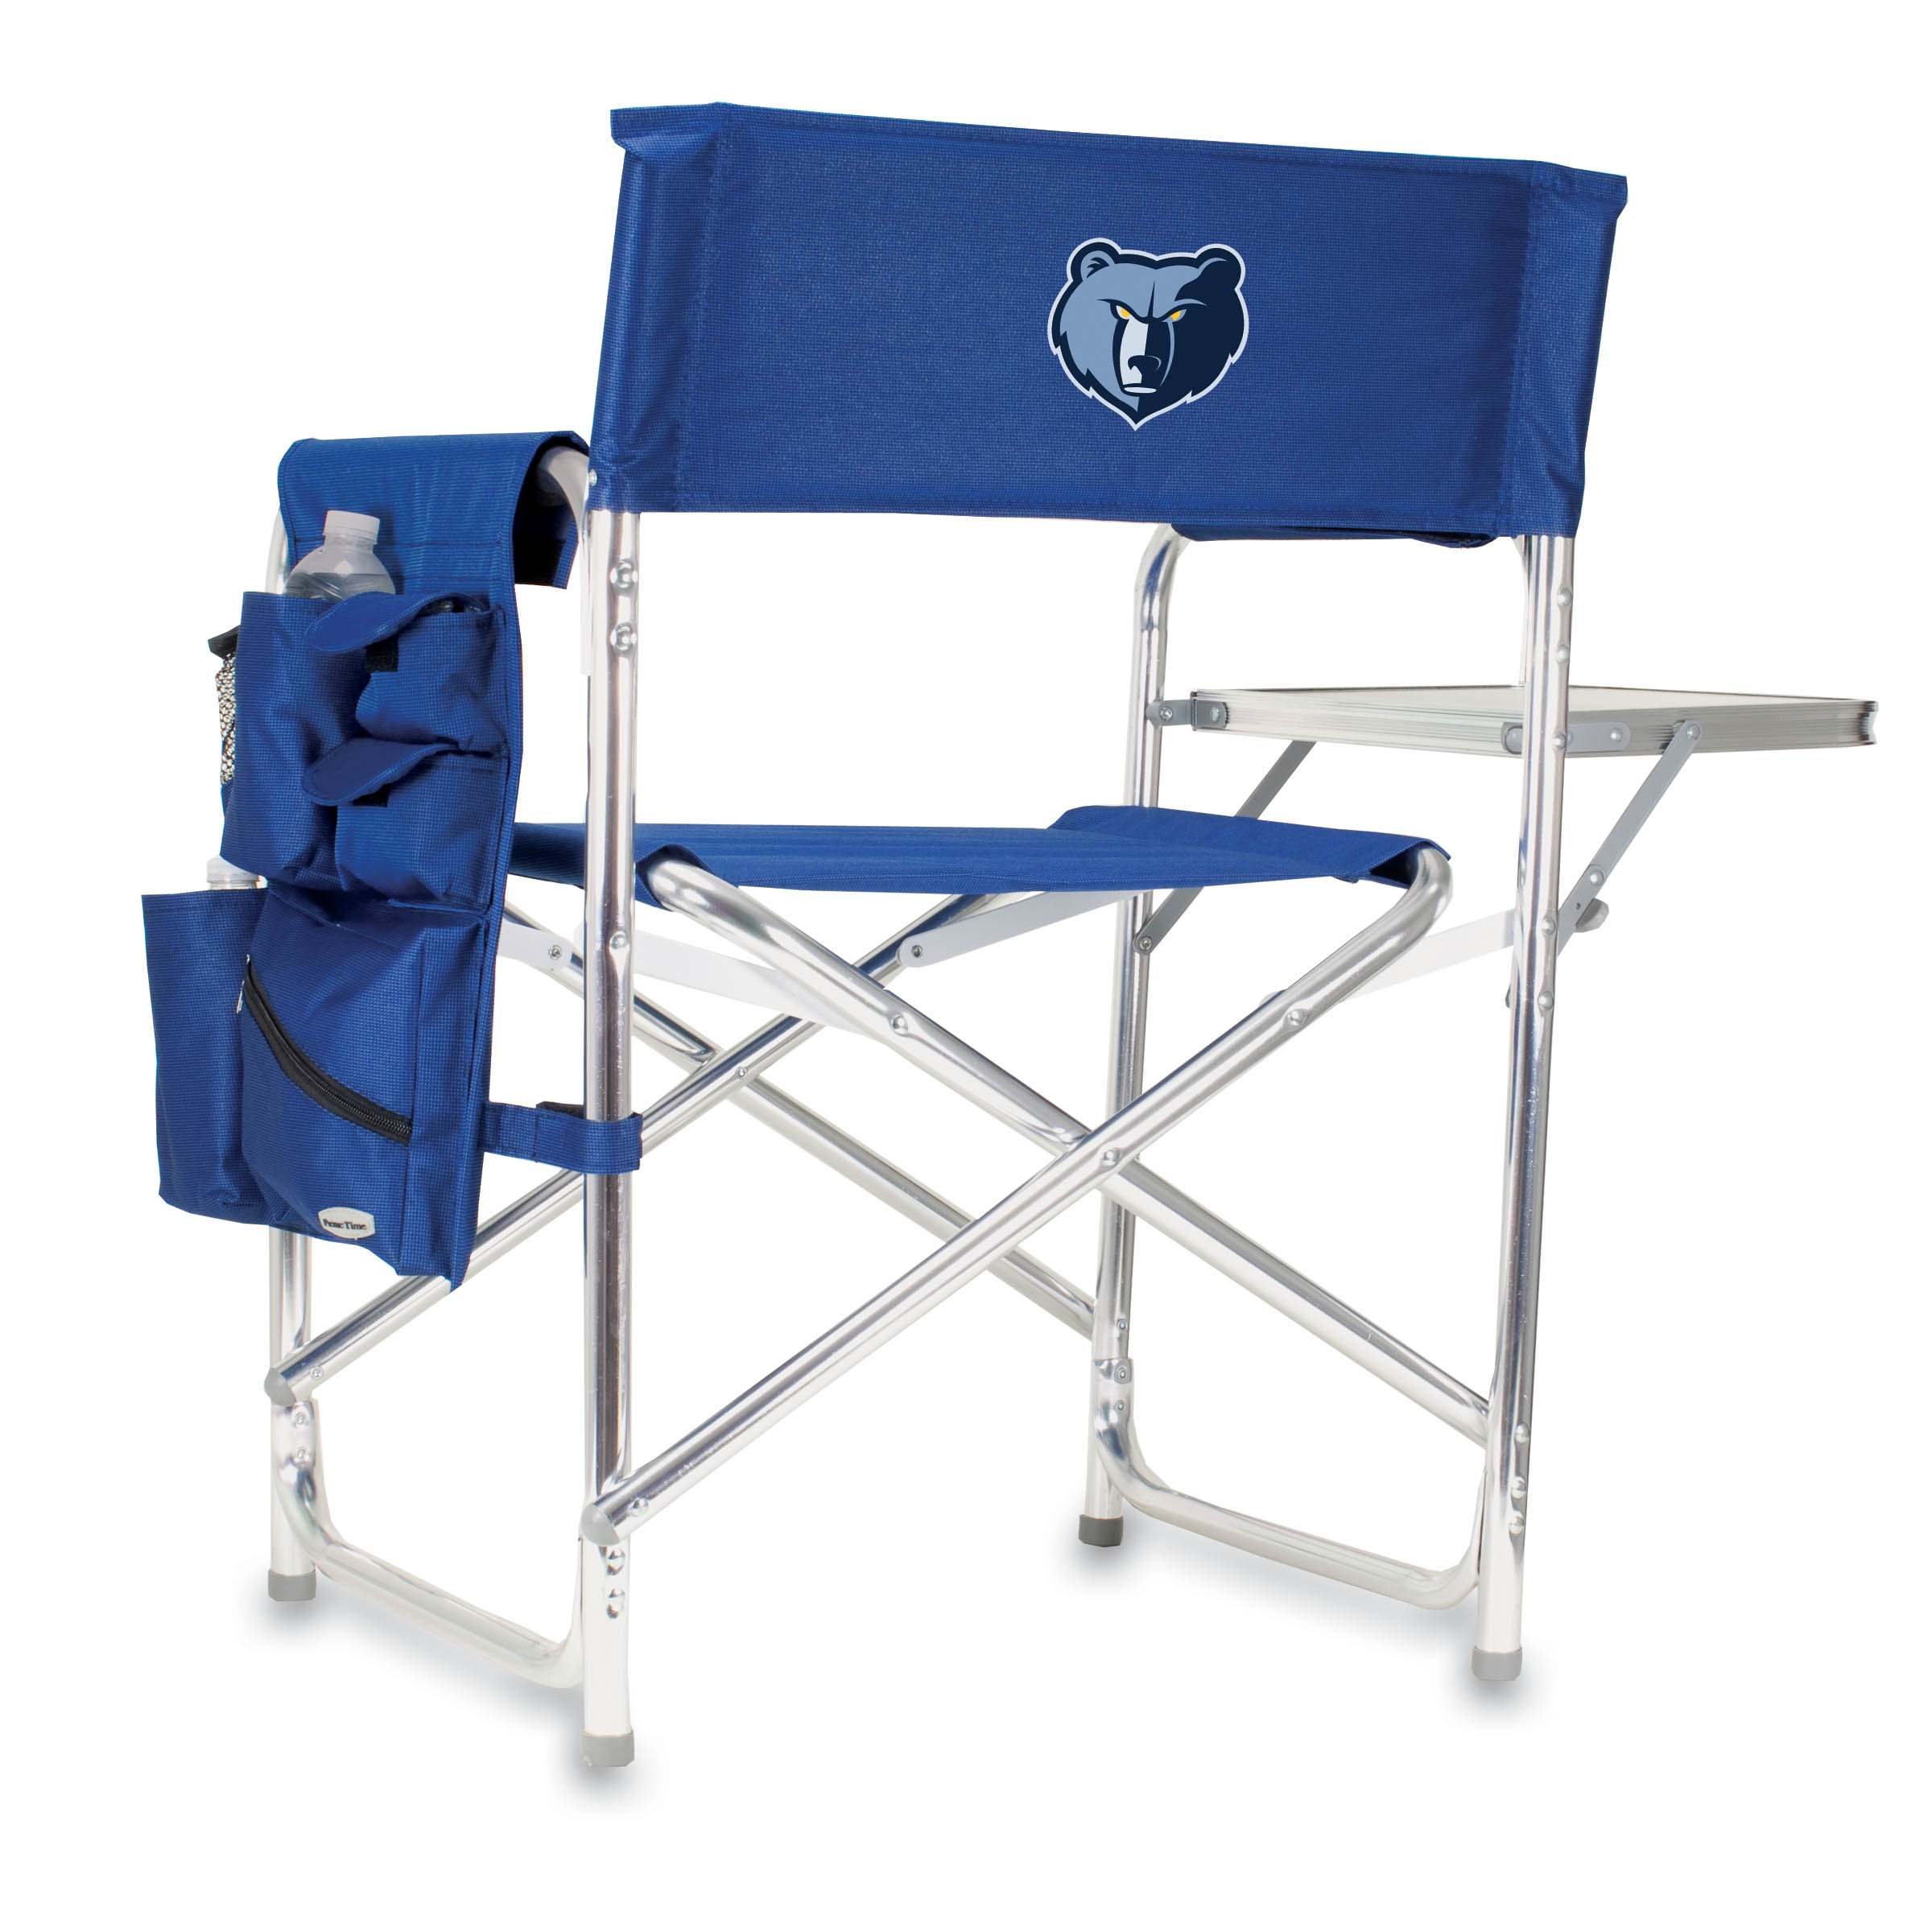 Picnic Time Nba Sports Chair Memphis Grizzlies